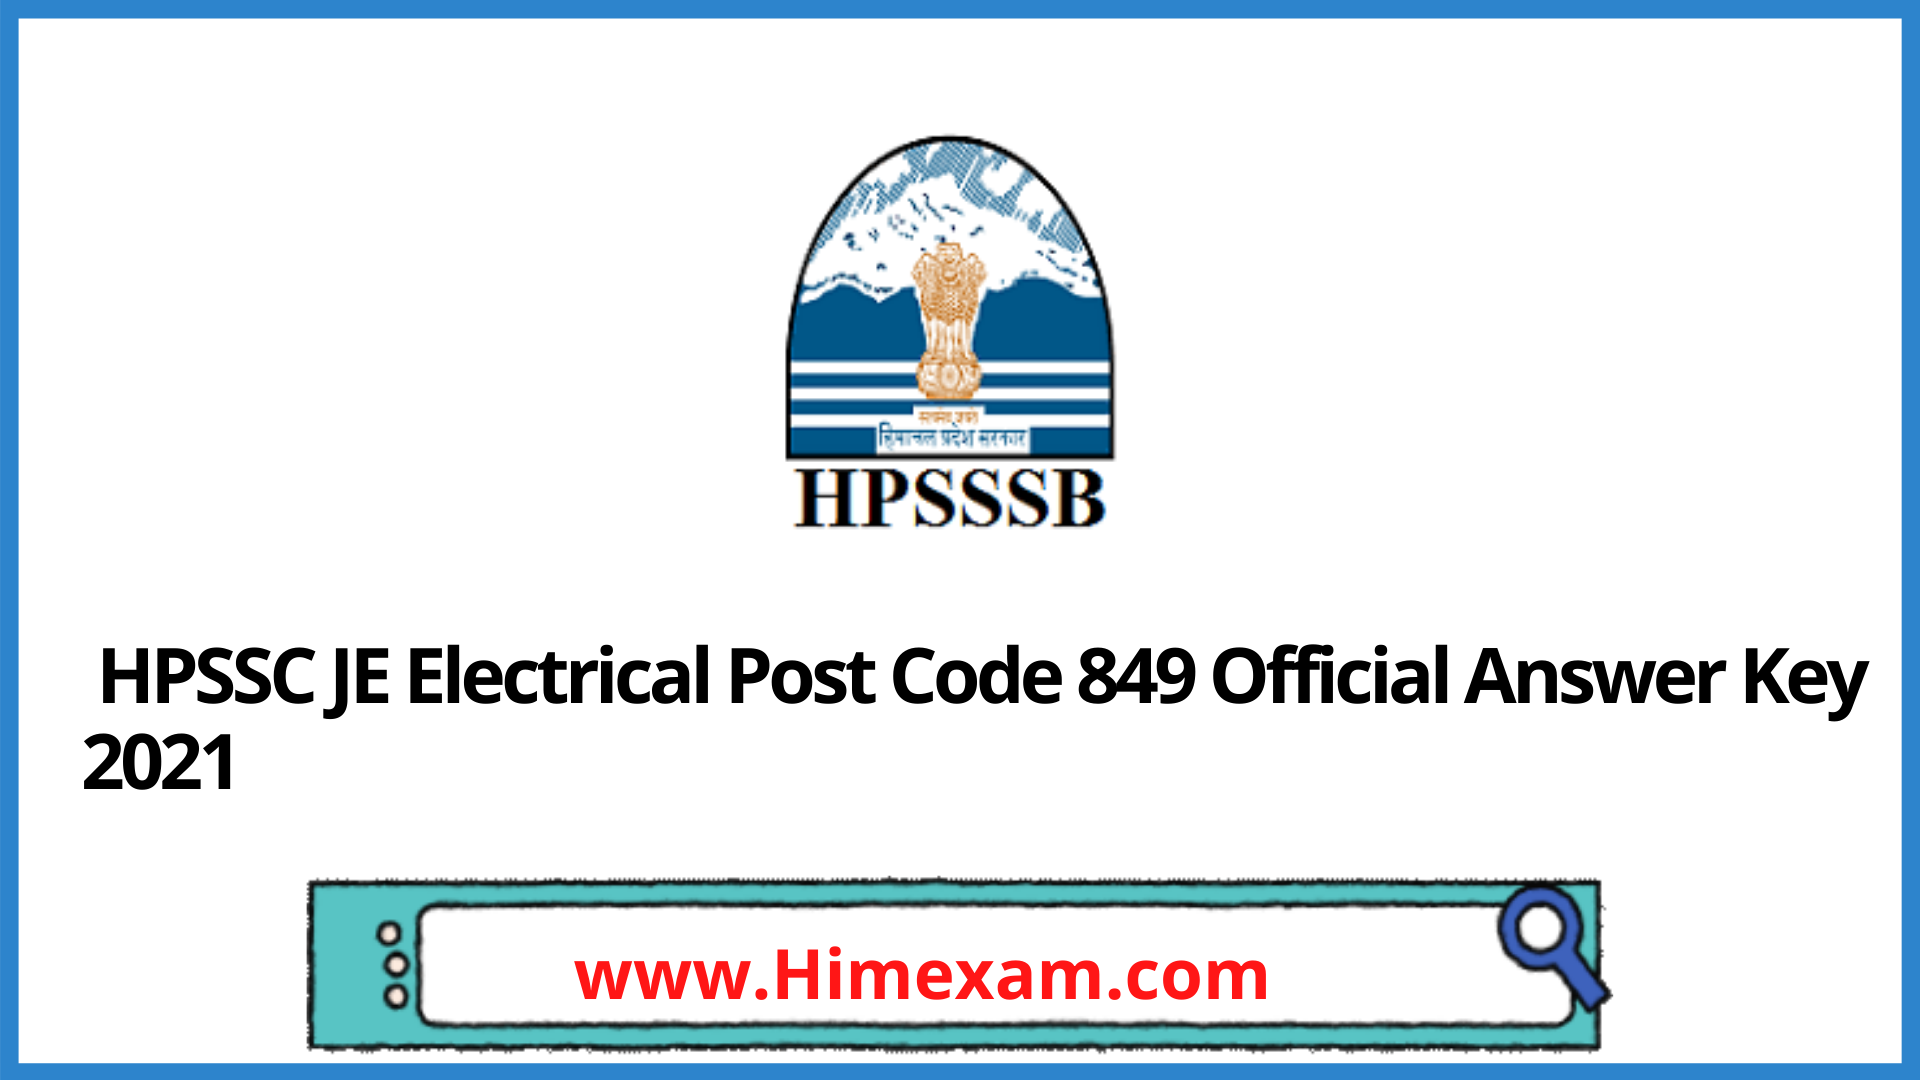 HPSSC JE Electrical Post Code 849 Official Answer Key 2021